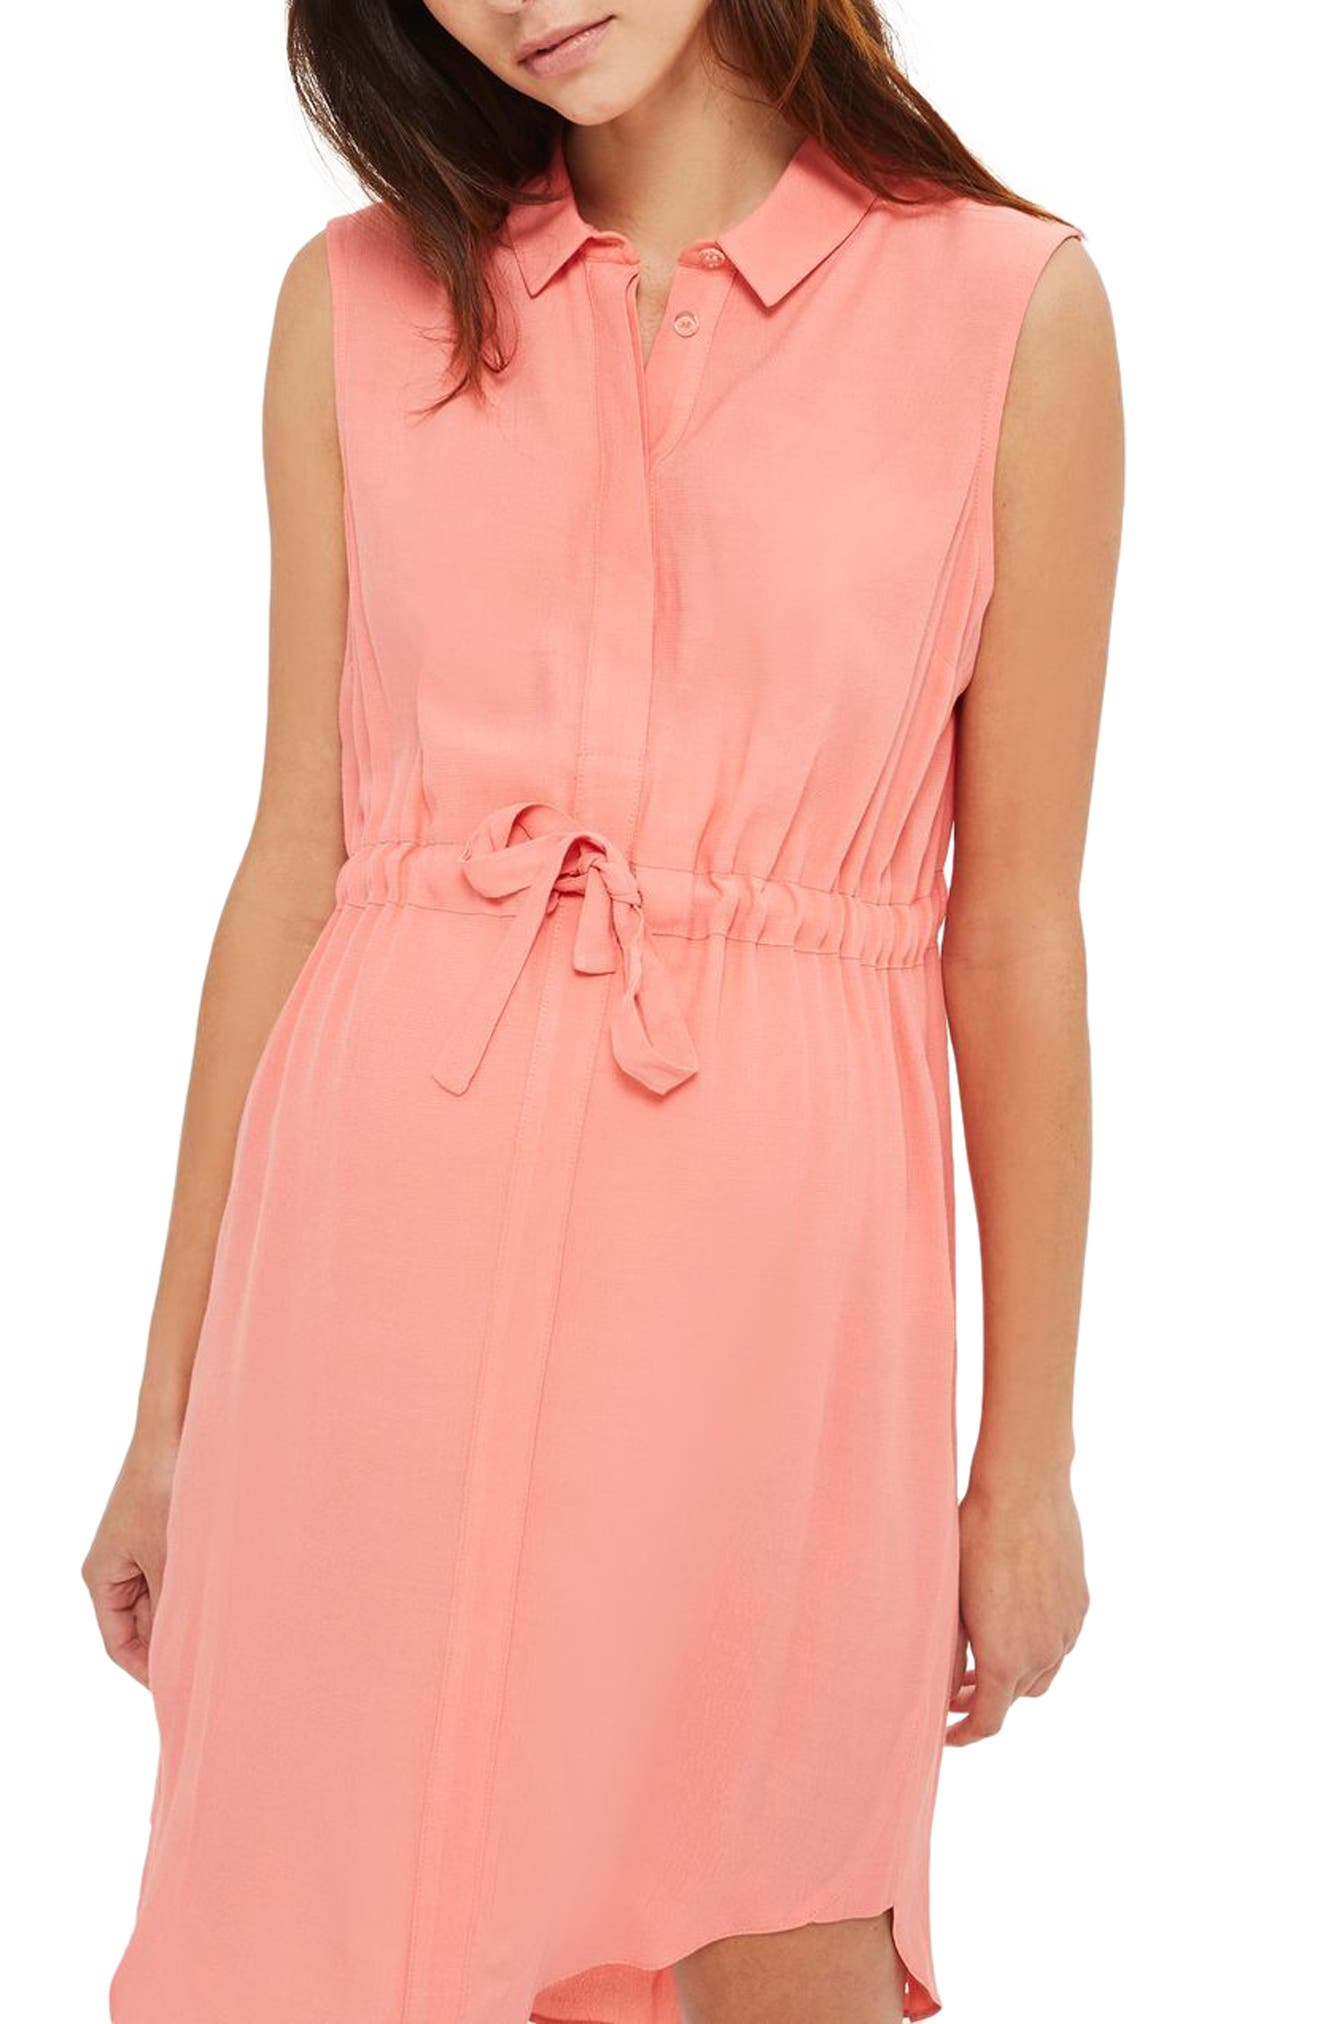 Topshop Drawstring Waist Maternity Dress